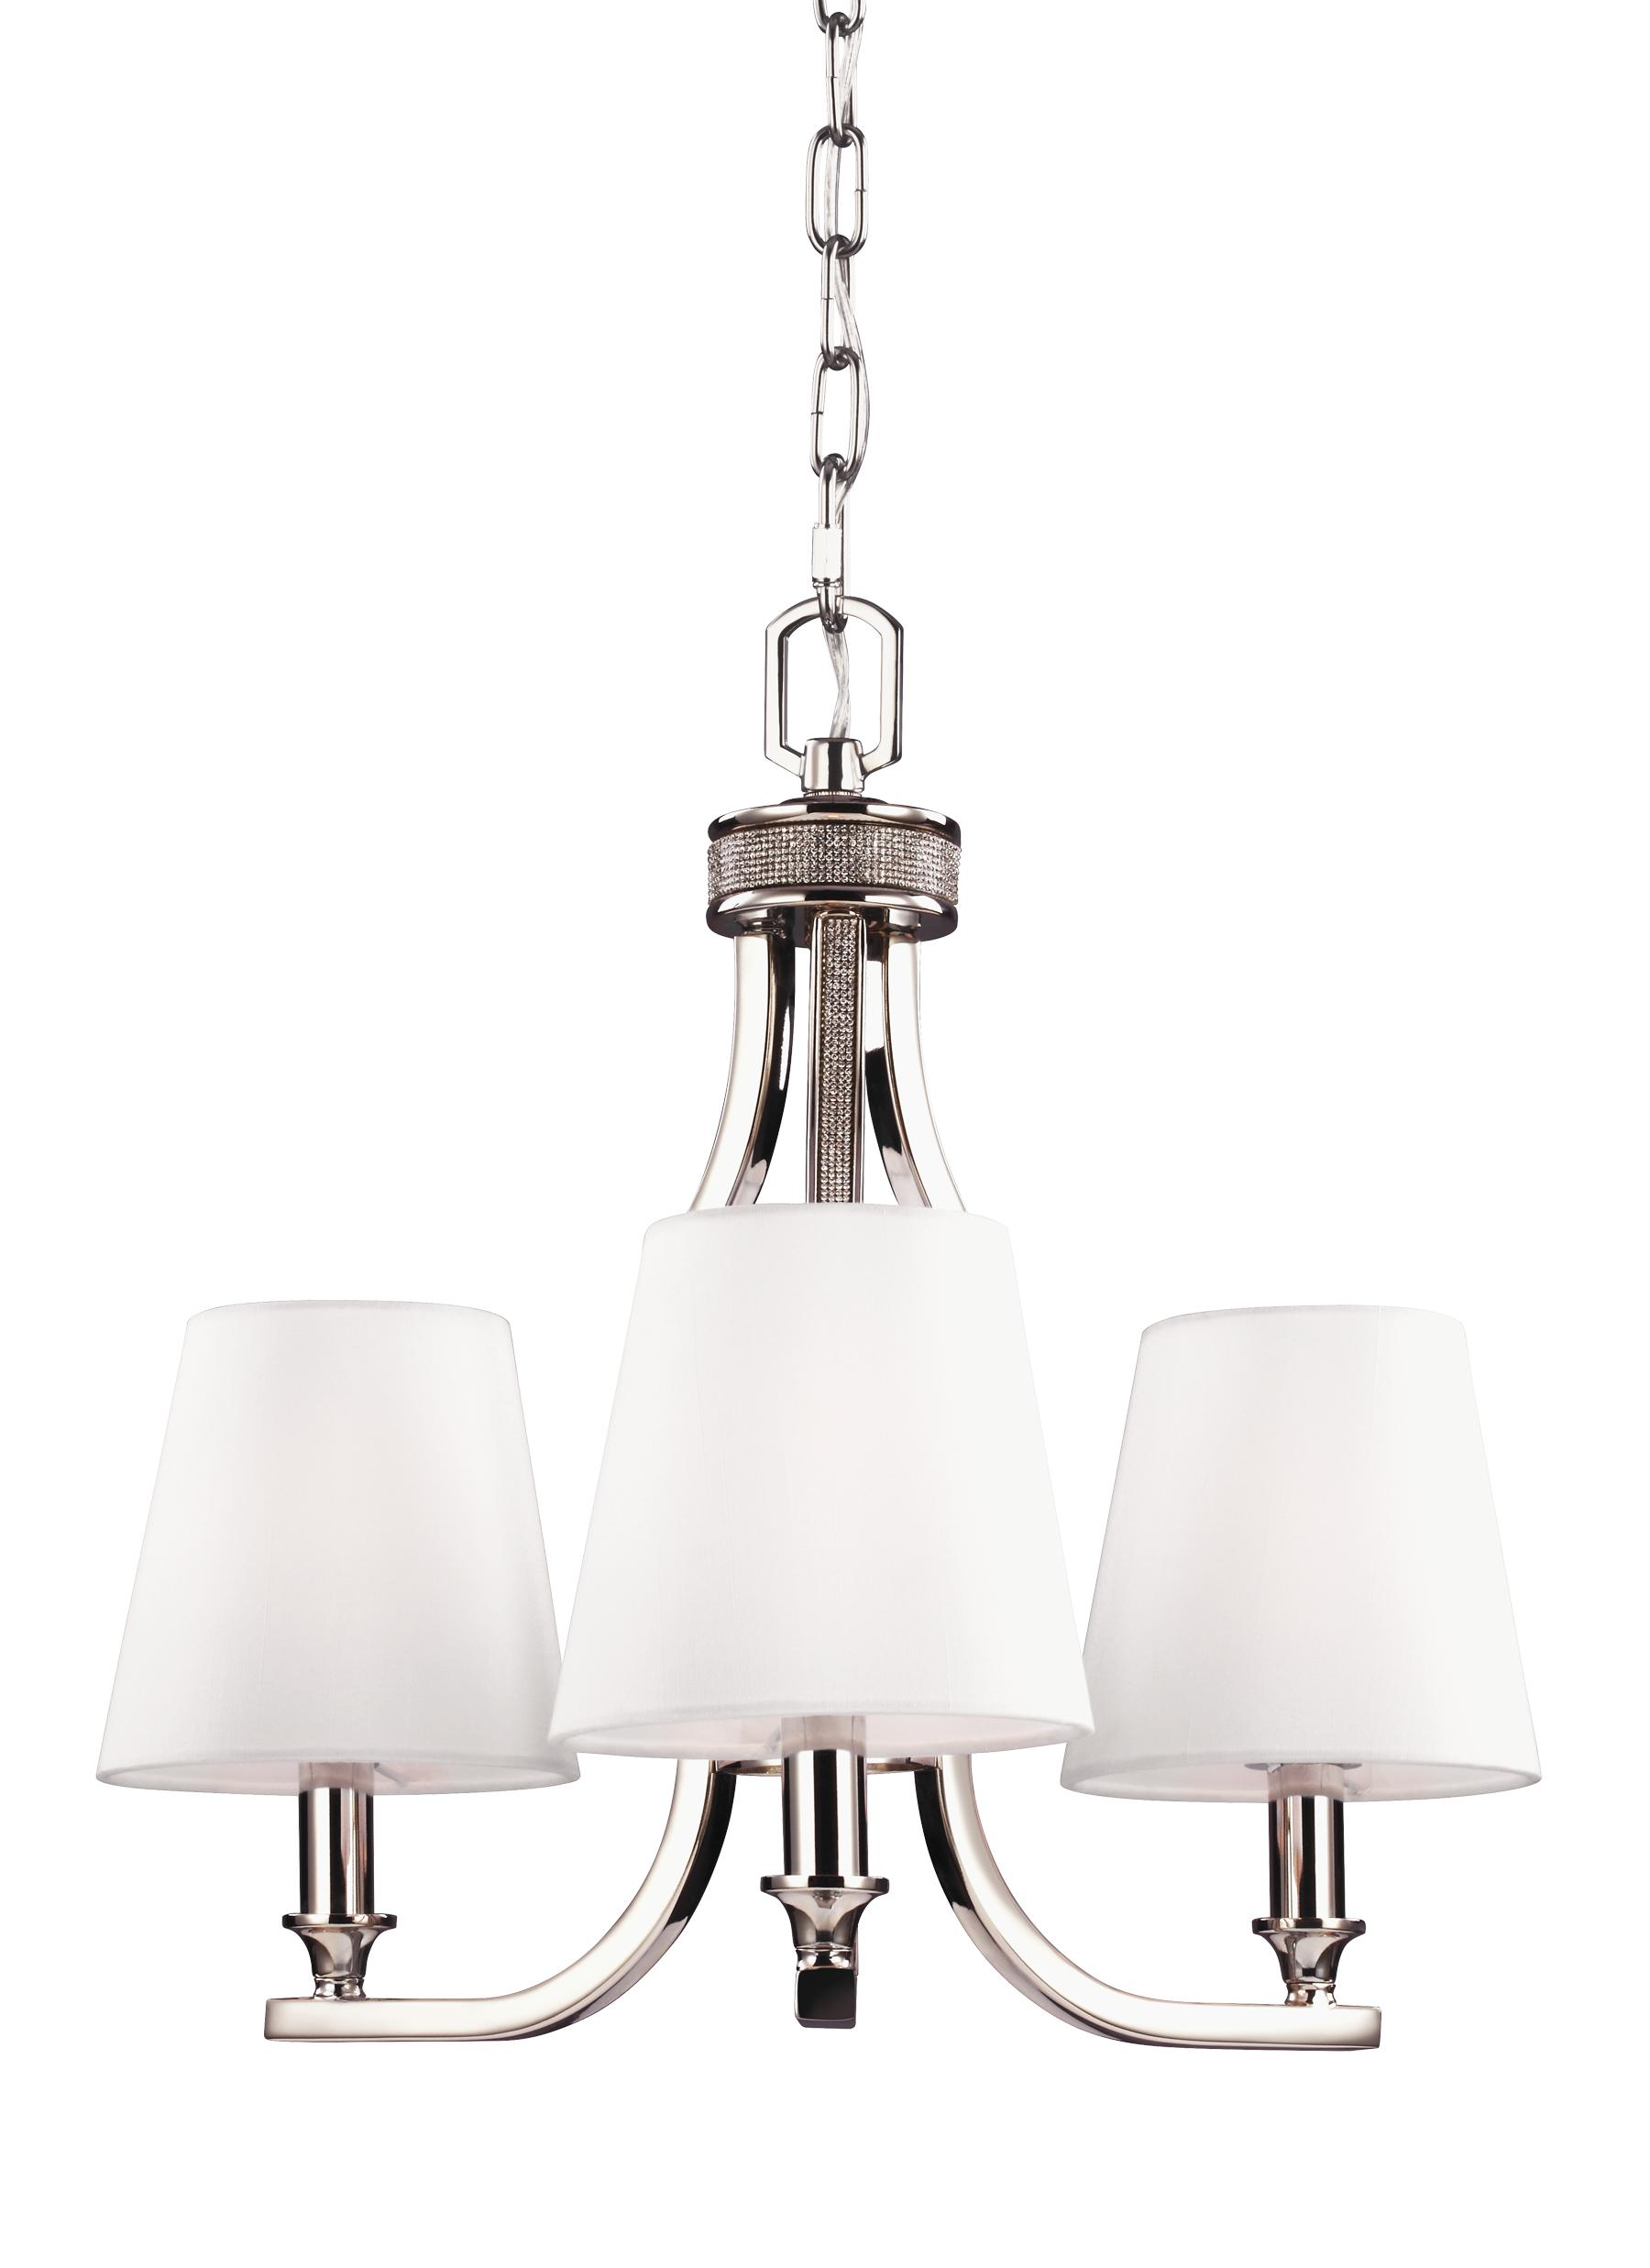 n chand by nickel jonathan milano alt category modern chandeliers adler image chandelier lighting